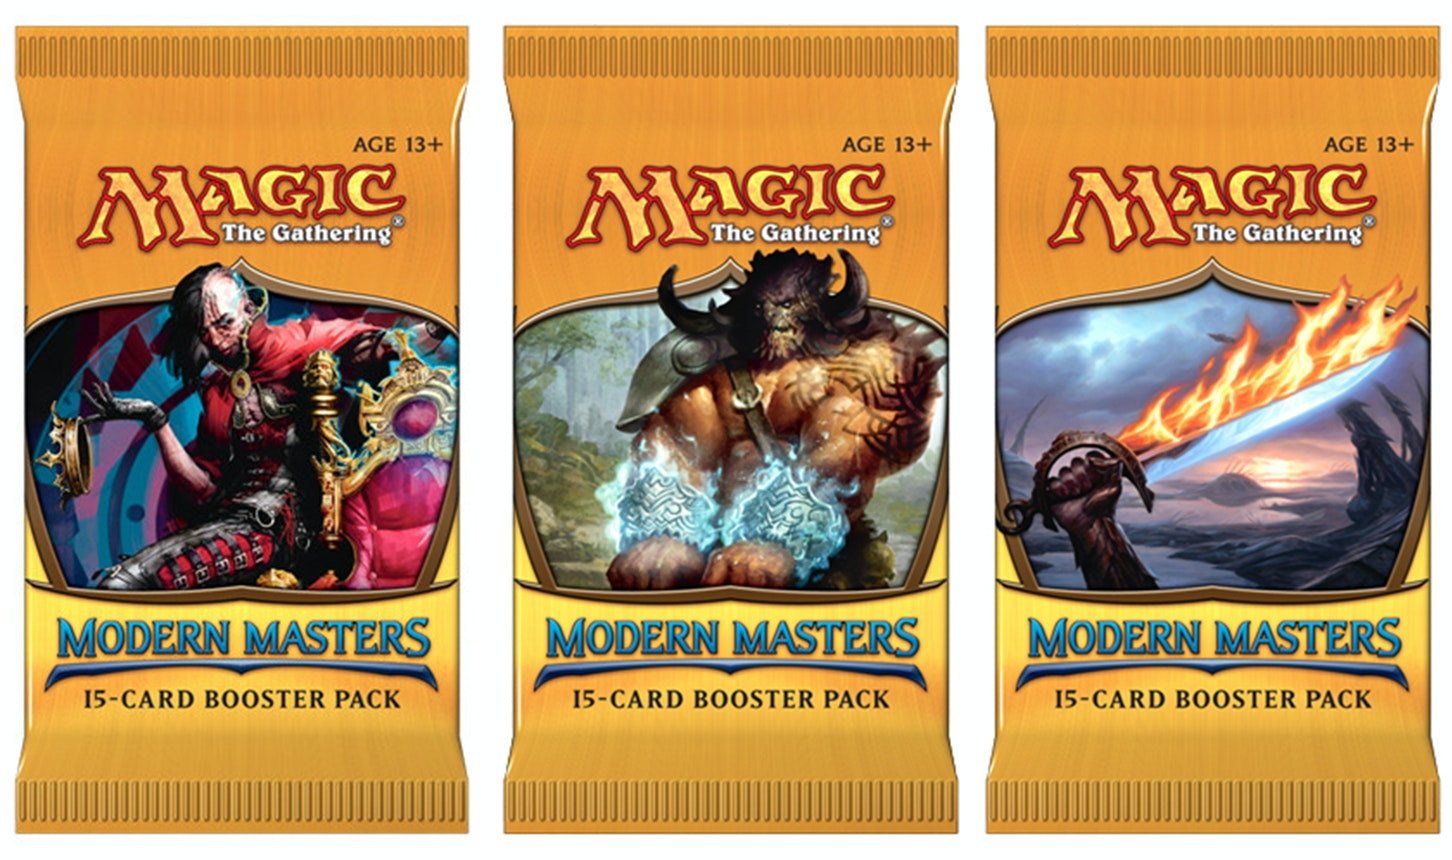 Modern Masters (3-Pack)